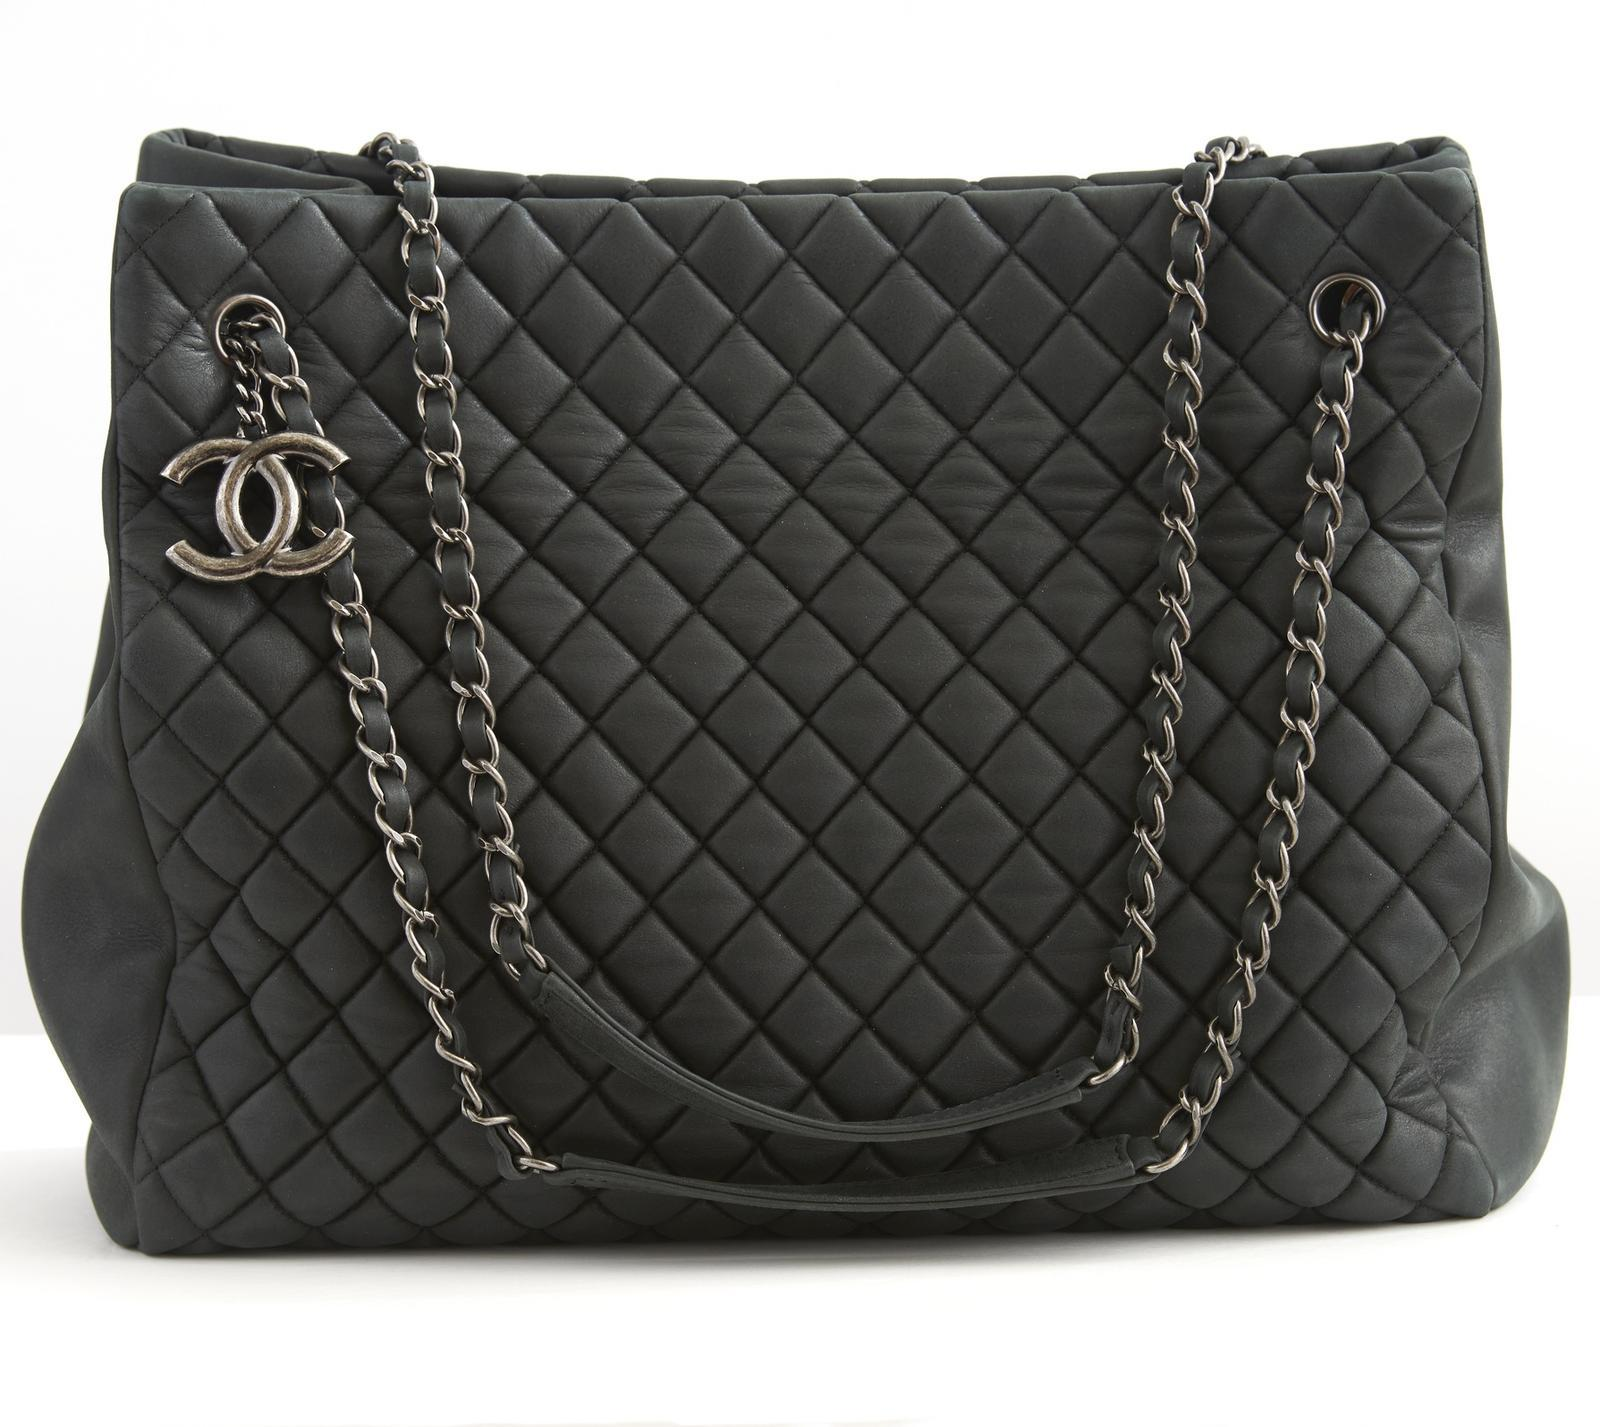 aacfa533c0eacc Chanel Charcoal 30cm Large Zip - Archive - Greenwald Antiques